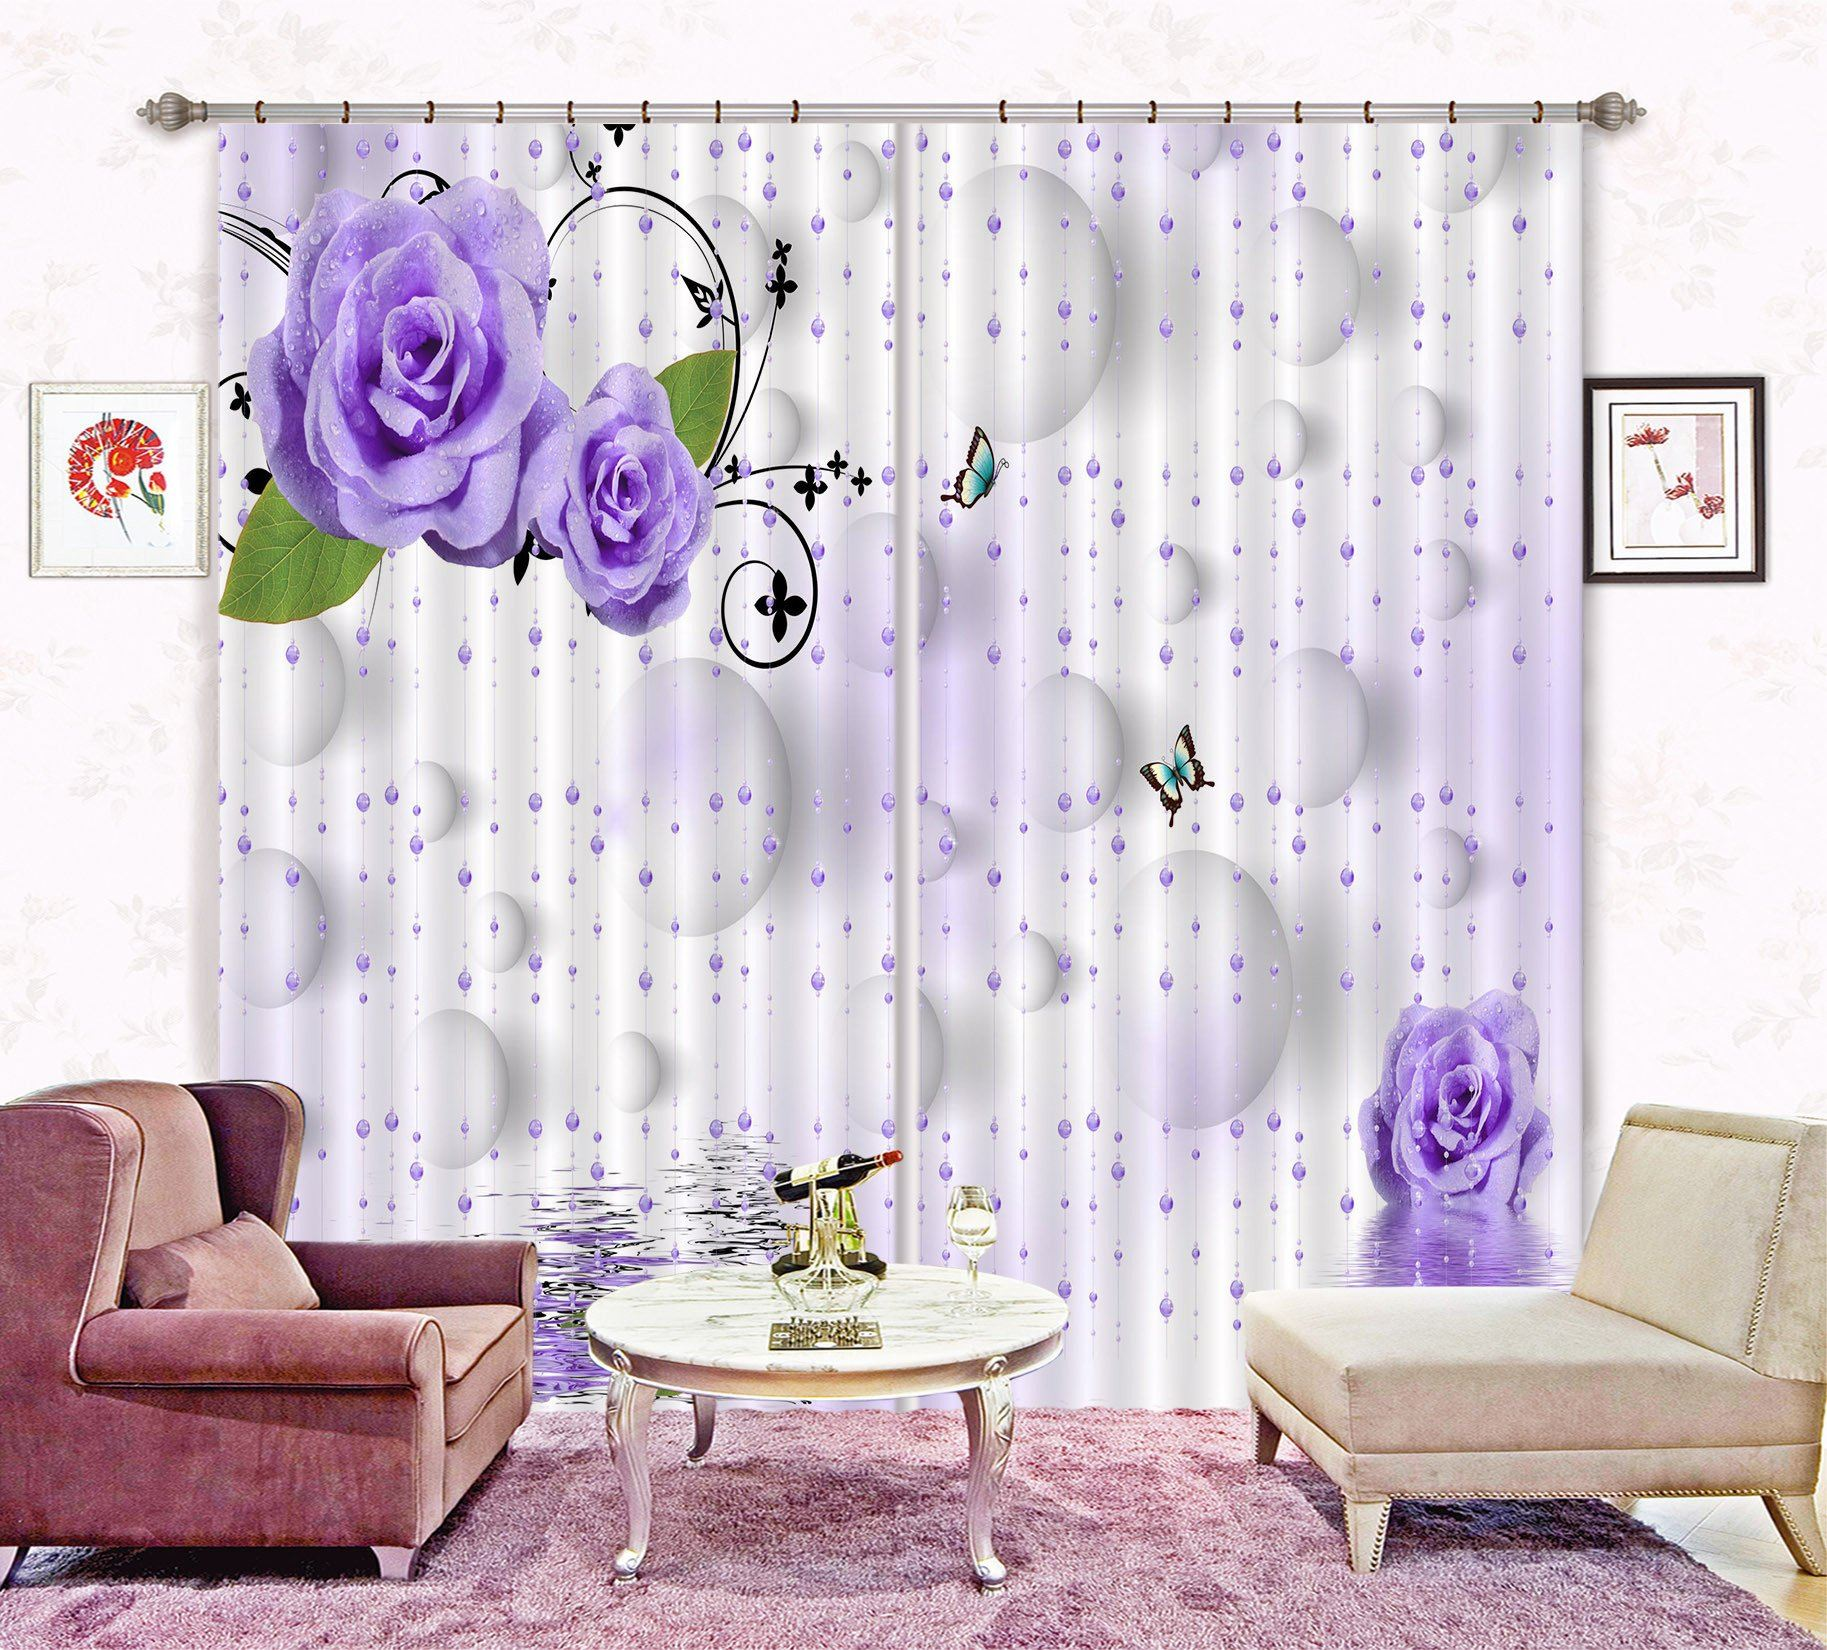 3D Bead Curtains Flowers Curtains Drapes